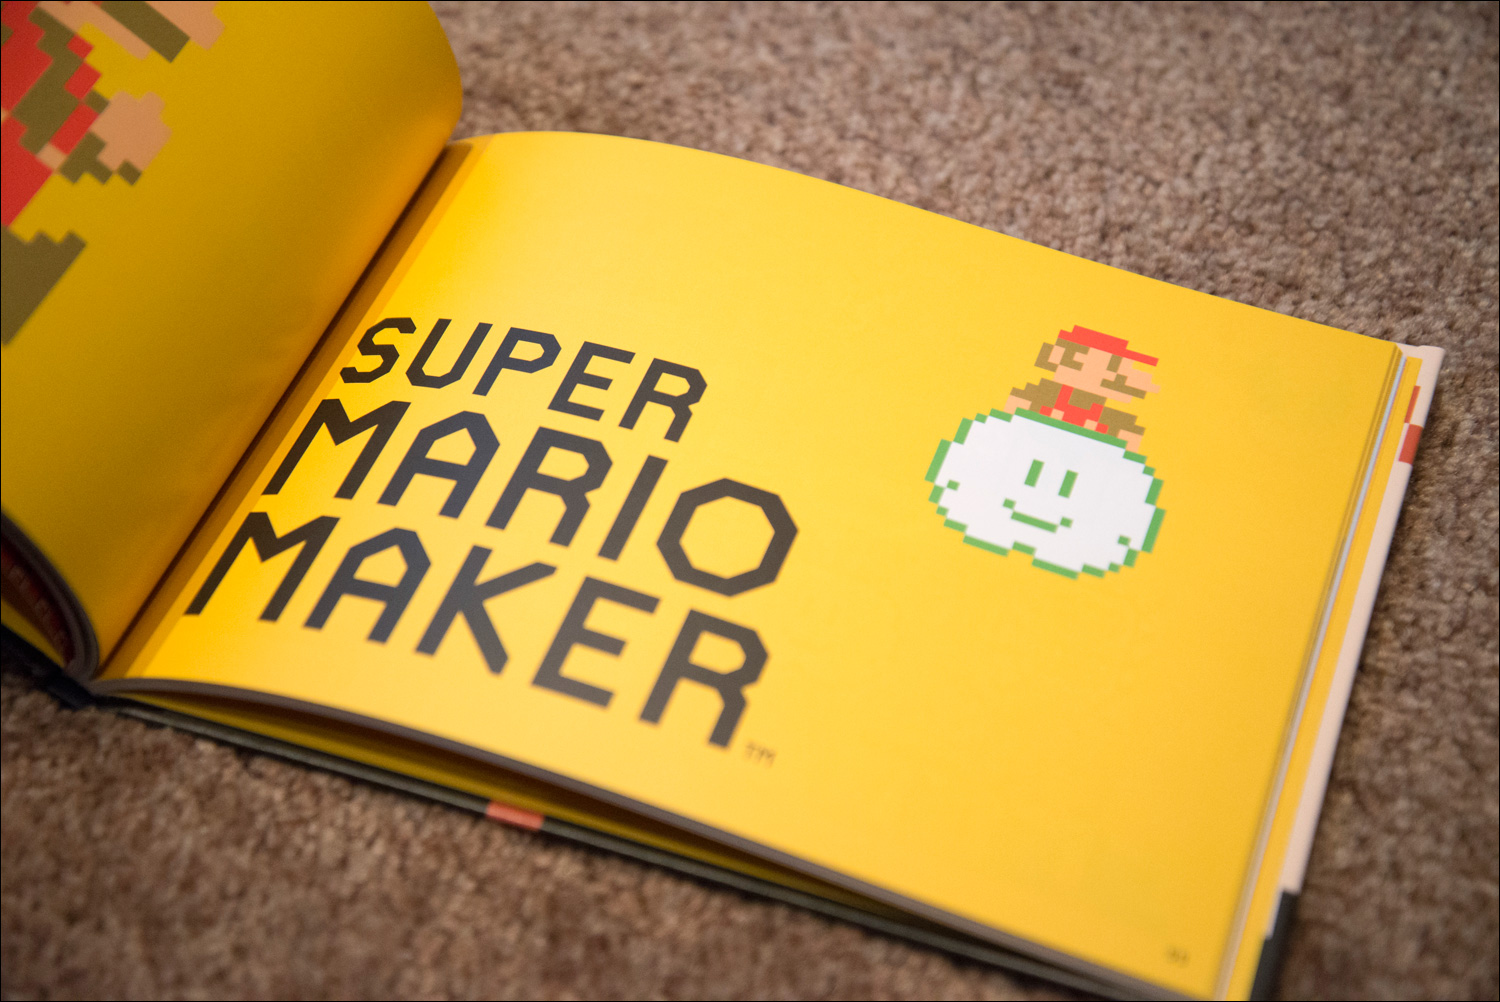 Super-Mario-Maker-Amiibo-Bundle-Artbook-Title